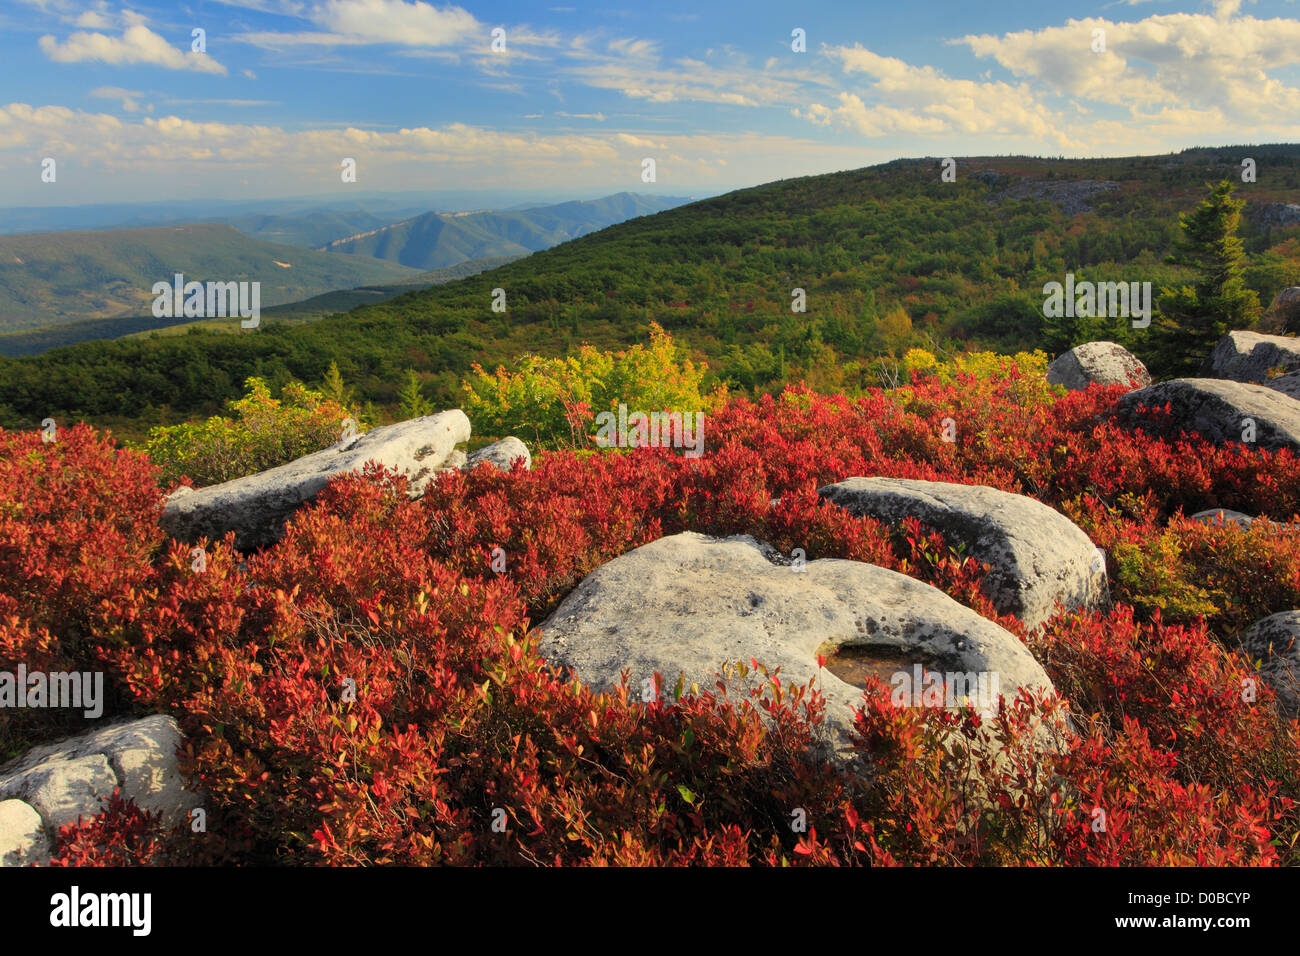 Bear Rocks Preserve, Dolly Sods Wilderness, Hopeville, West Virginia, USA - Stock Image